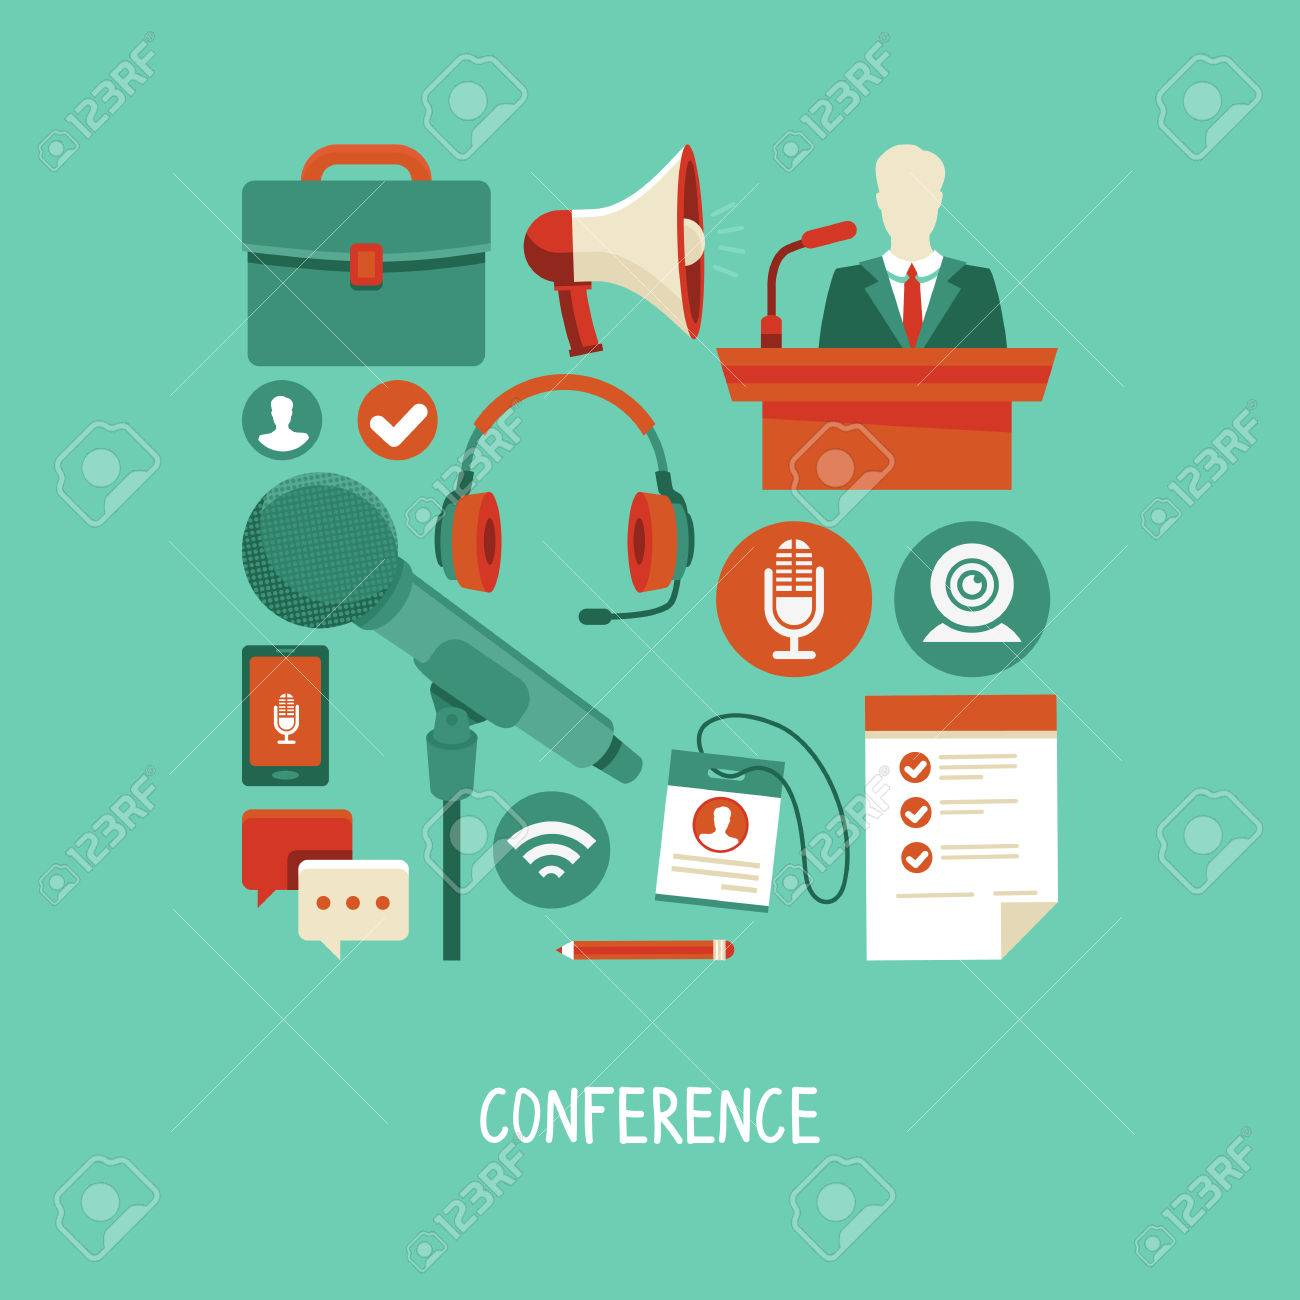 business conference concept in flat style - webinar and online meeting icons and signs Stock Vector - 26497014